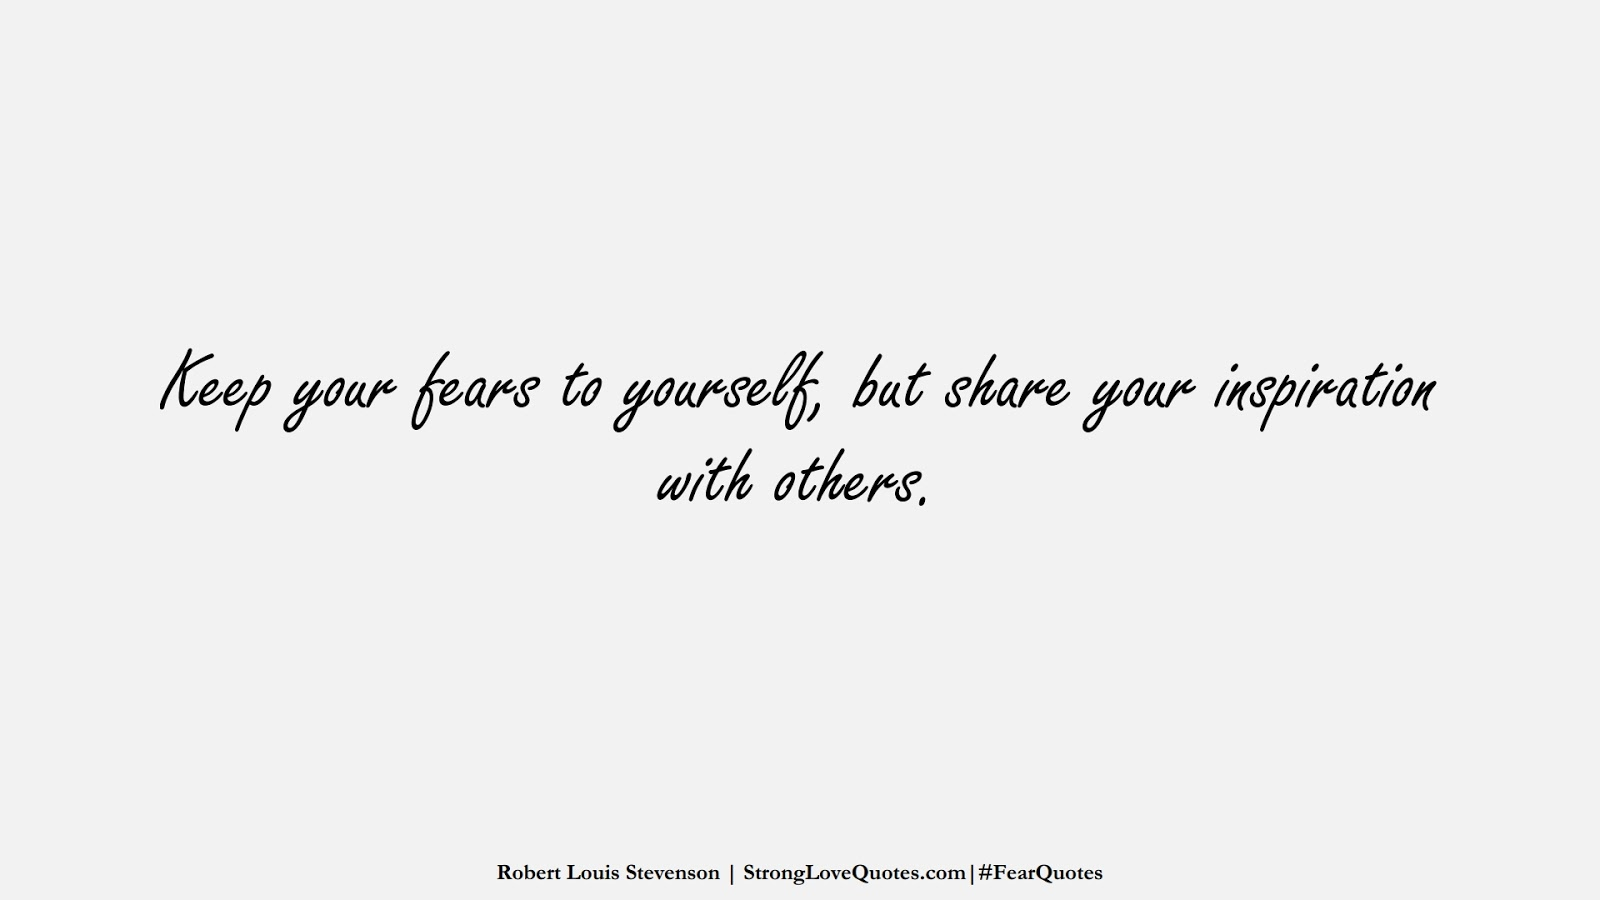 Keep your fears to yourself, but share your inspiration with others. (Robert Louis Stevenson);  #FearQuotes